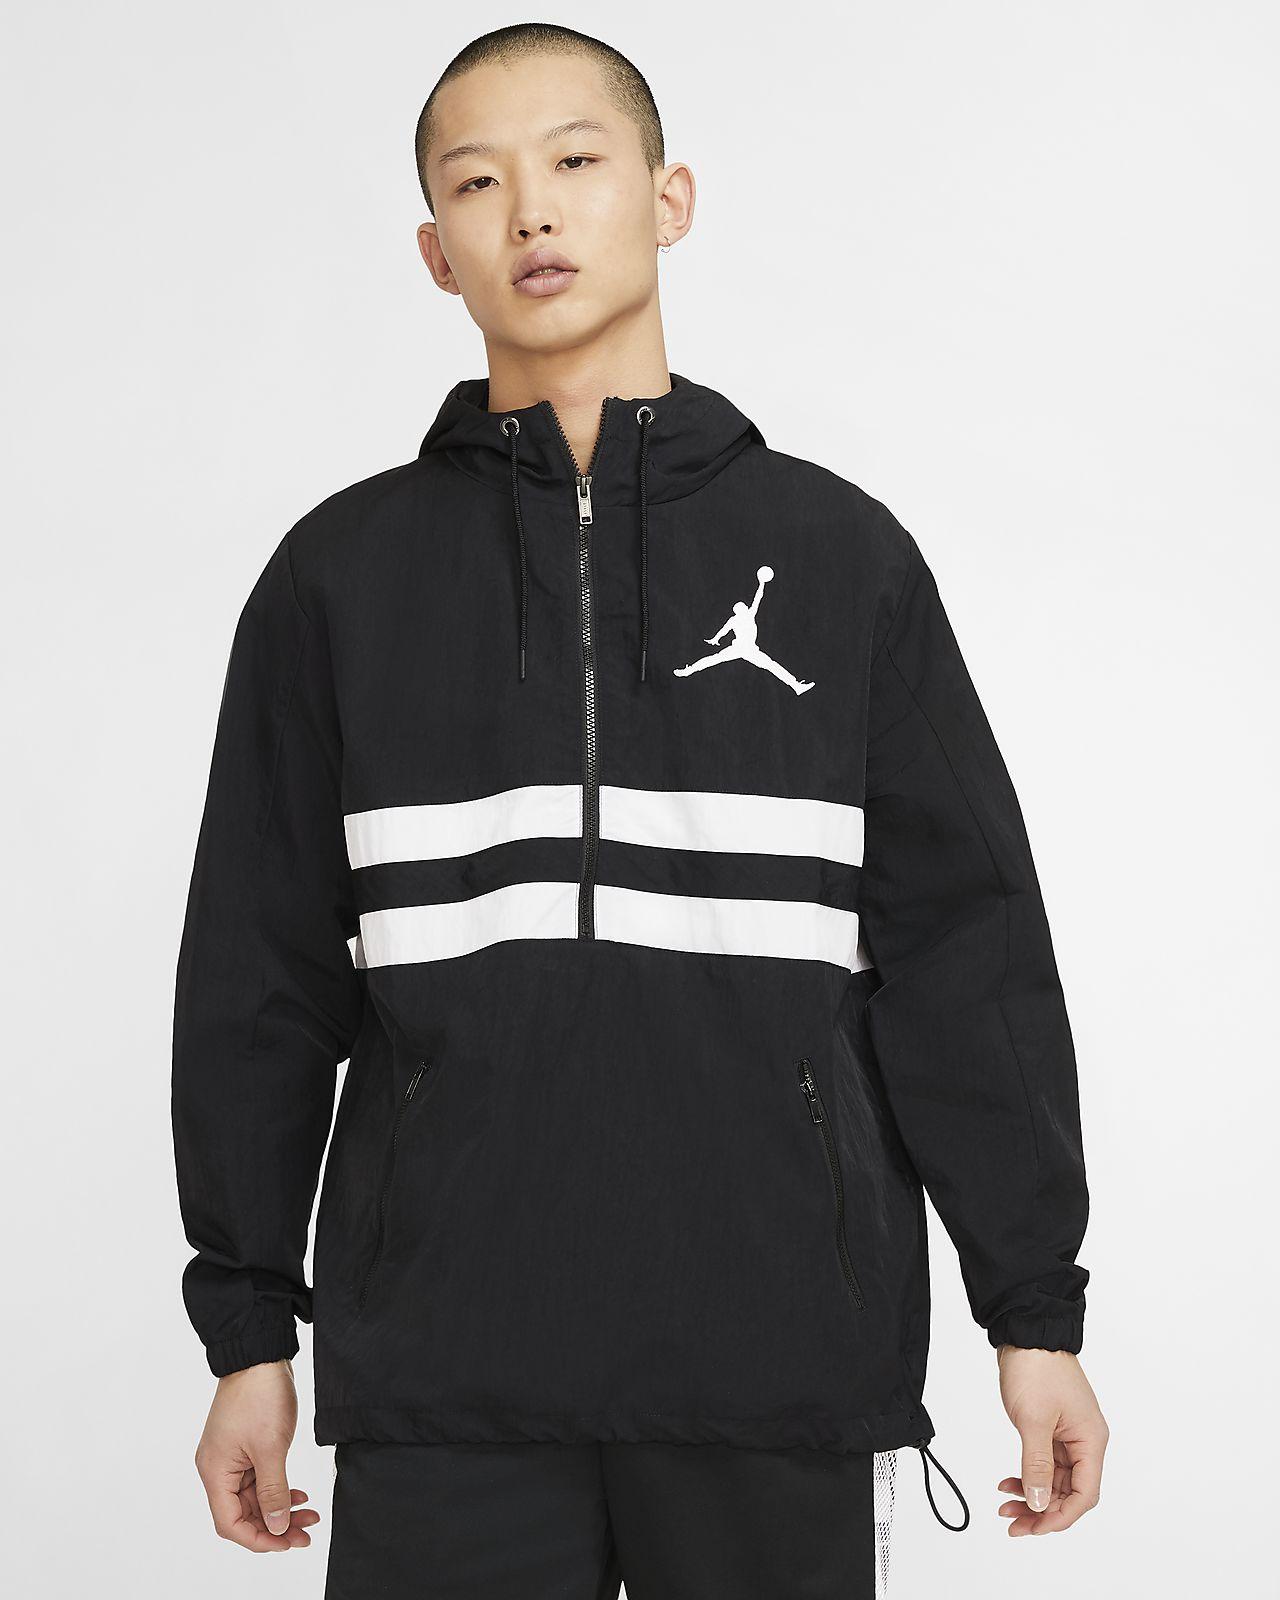 Jordan Jumpman Men's Logo Jacket